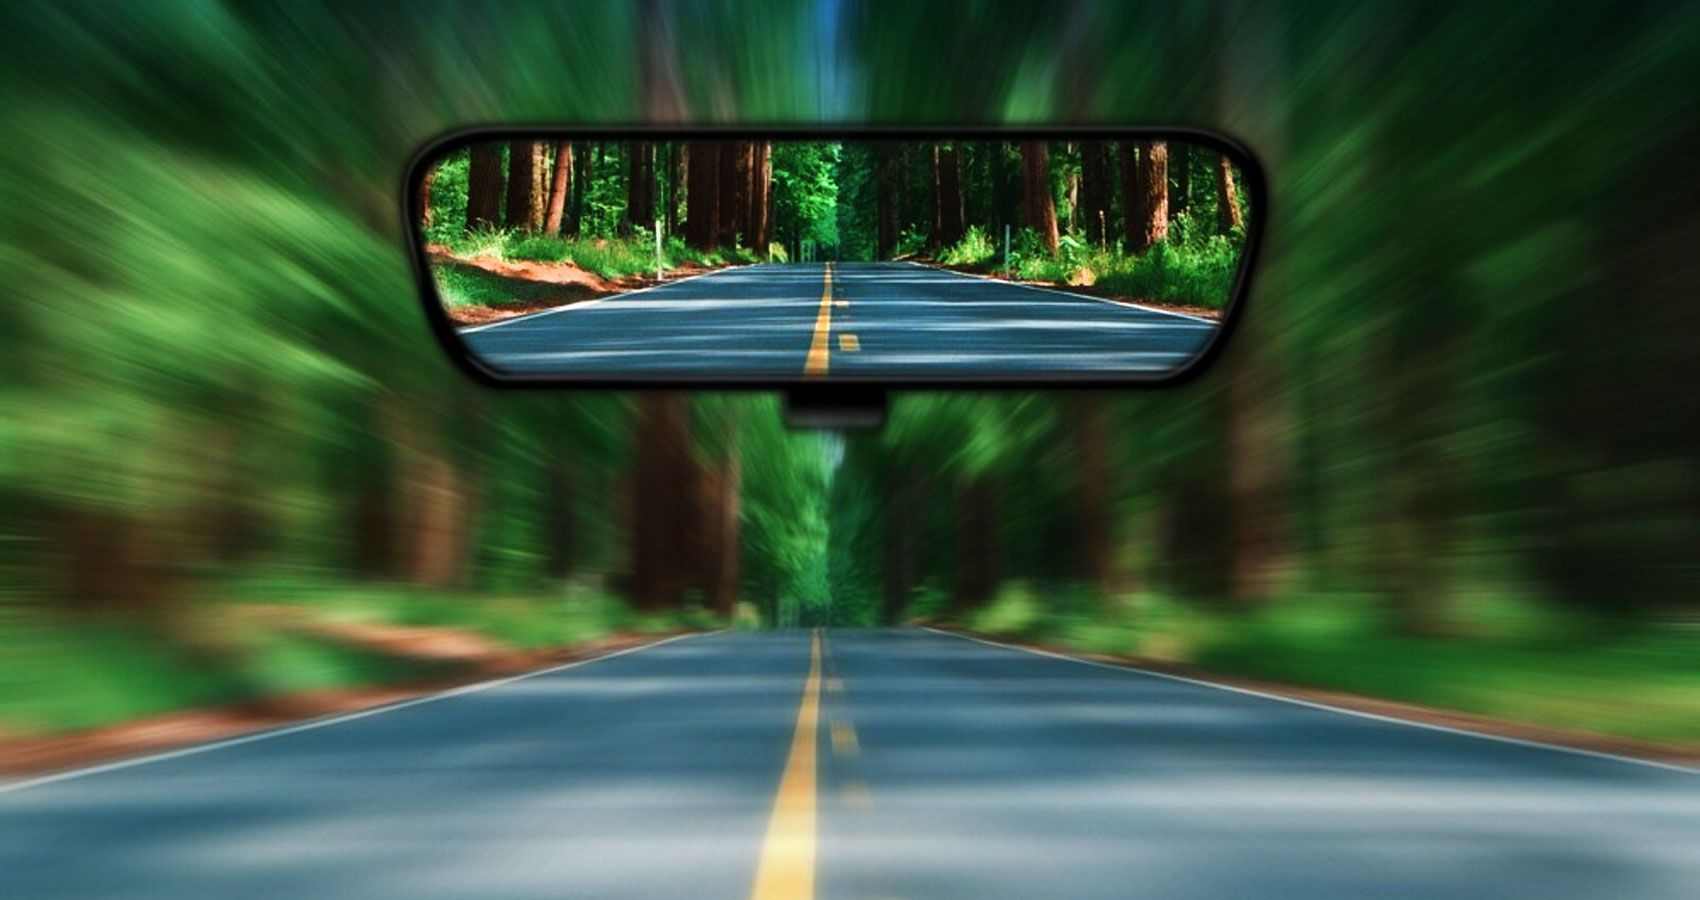 looking back through the rear-view mirror | Xe tải, Tin tức